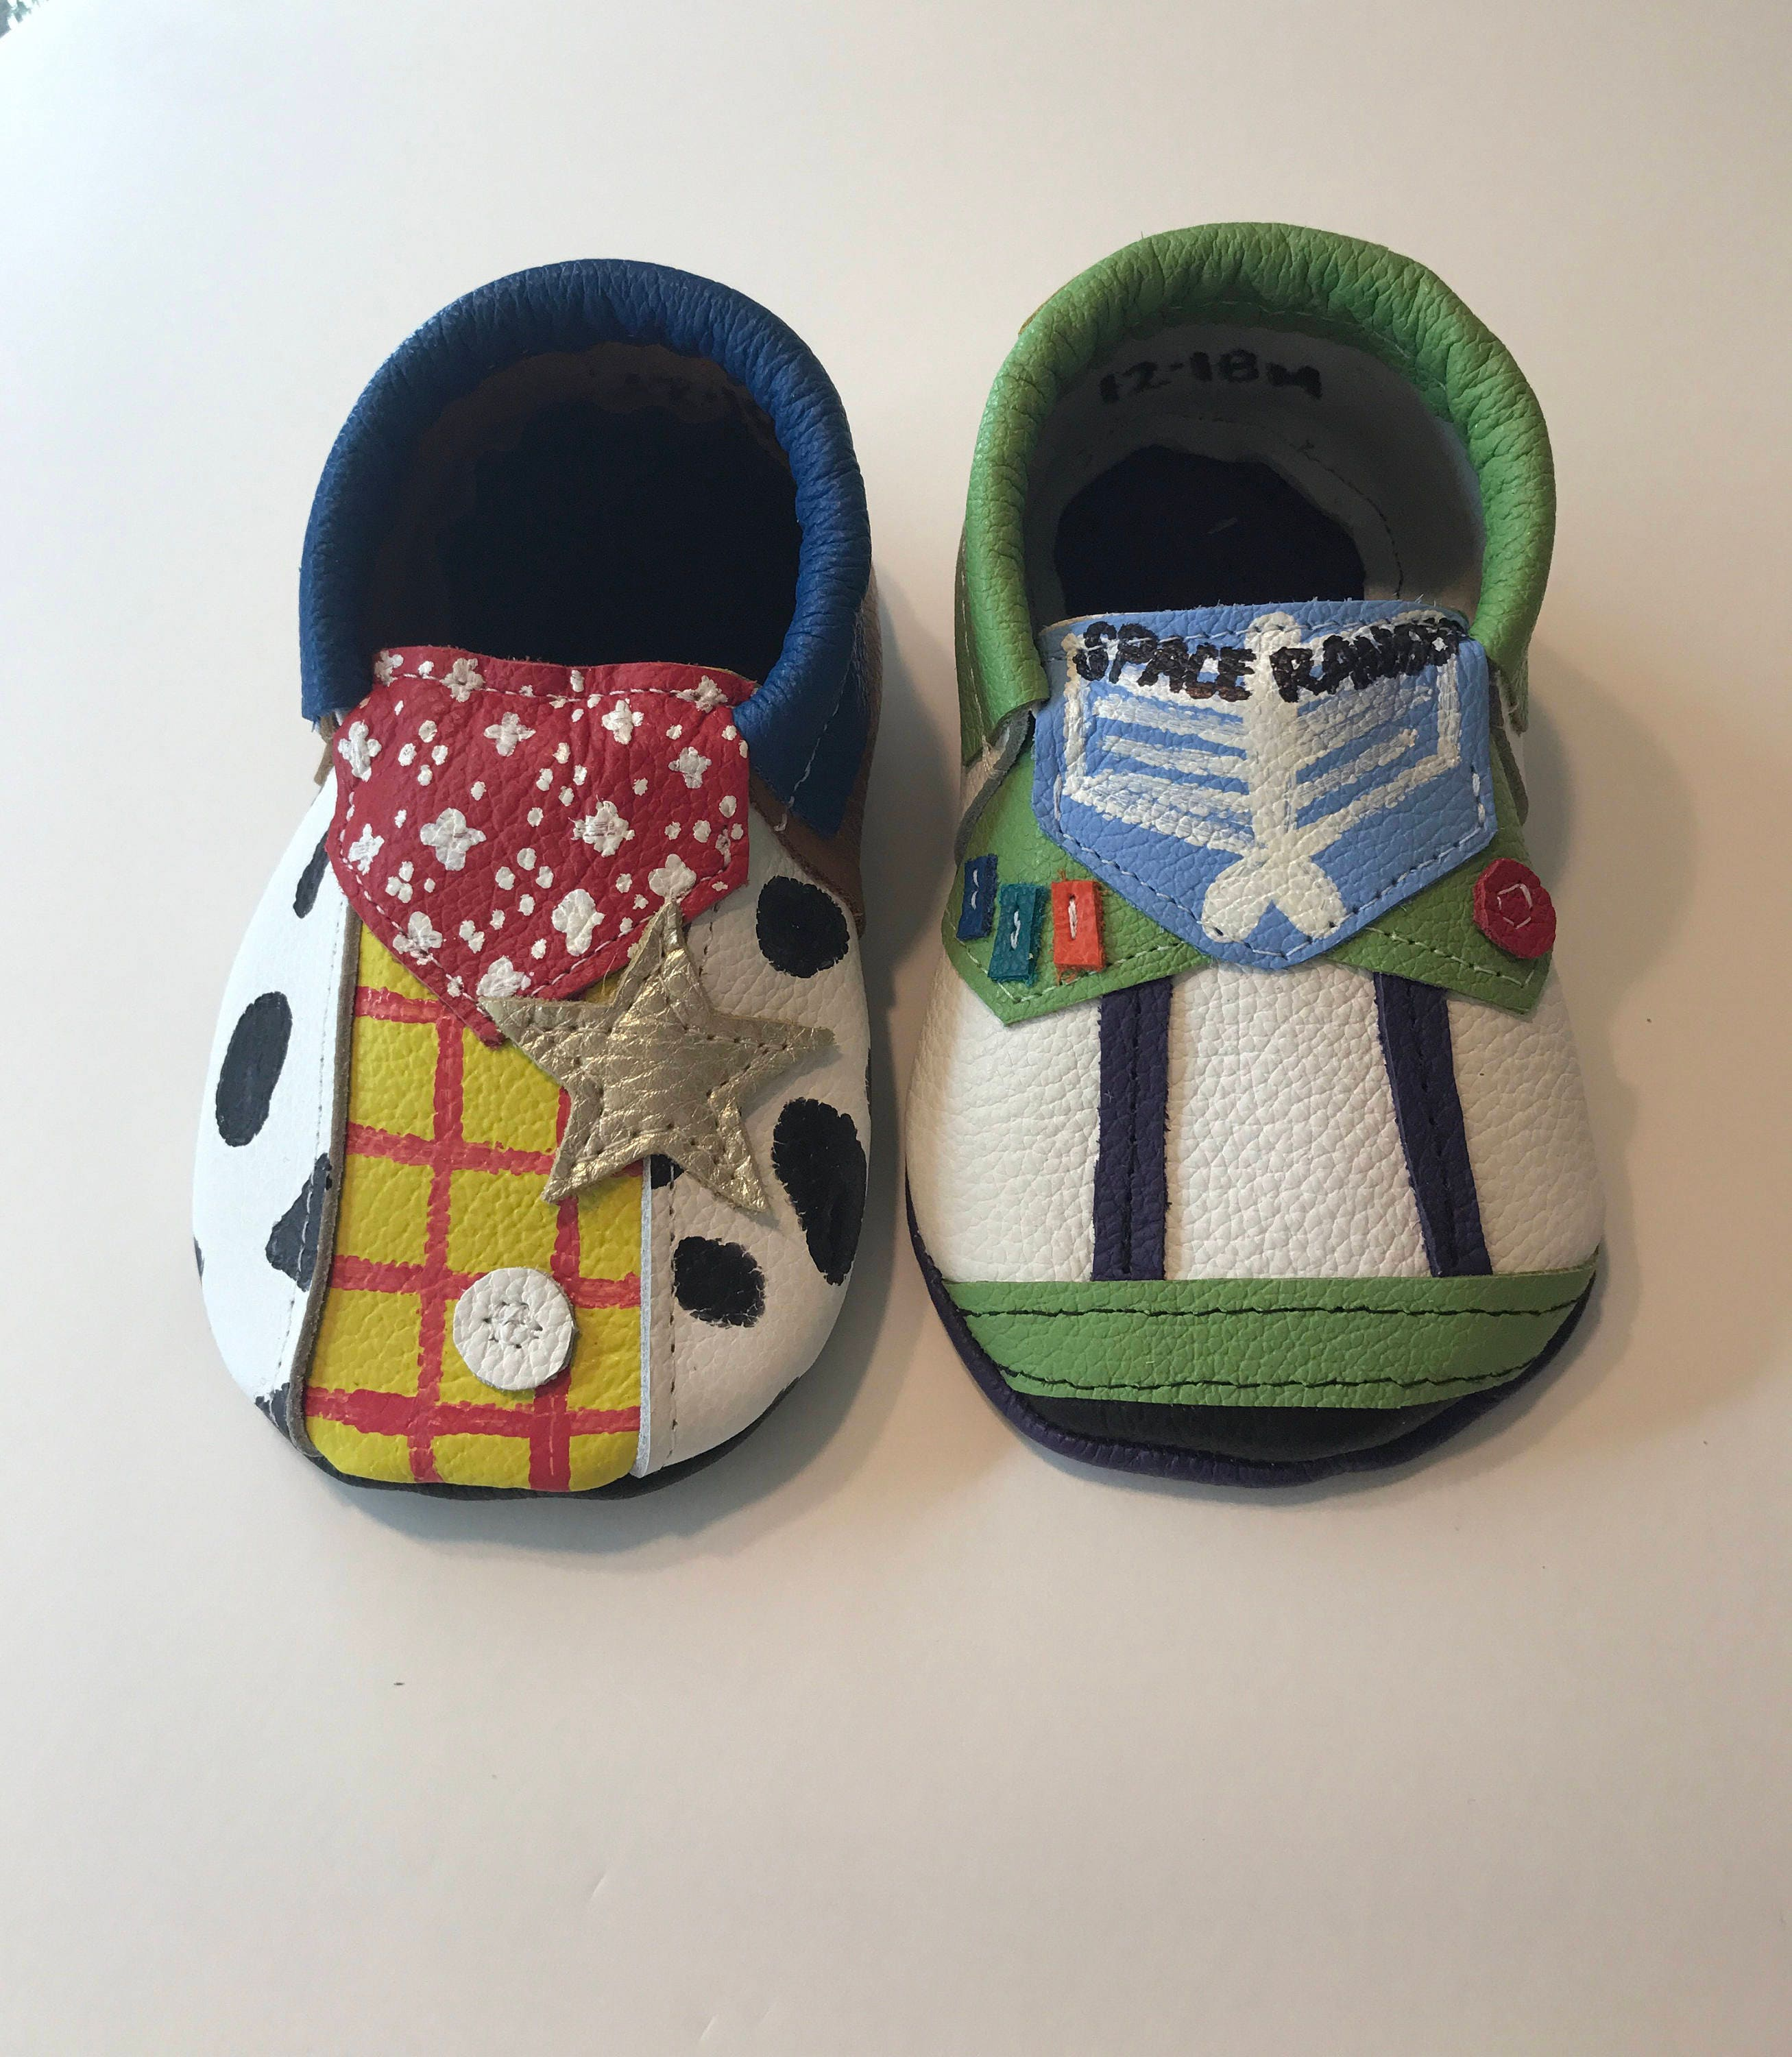 Toy Story Leather Moccasins, Woody and Buzz Lightyear Shoes, Toy Moccasins,Baby Story, Genuine Leather Baby Moccasins,Baby Toy Moccasins,Toddler Moccasins 596096